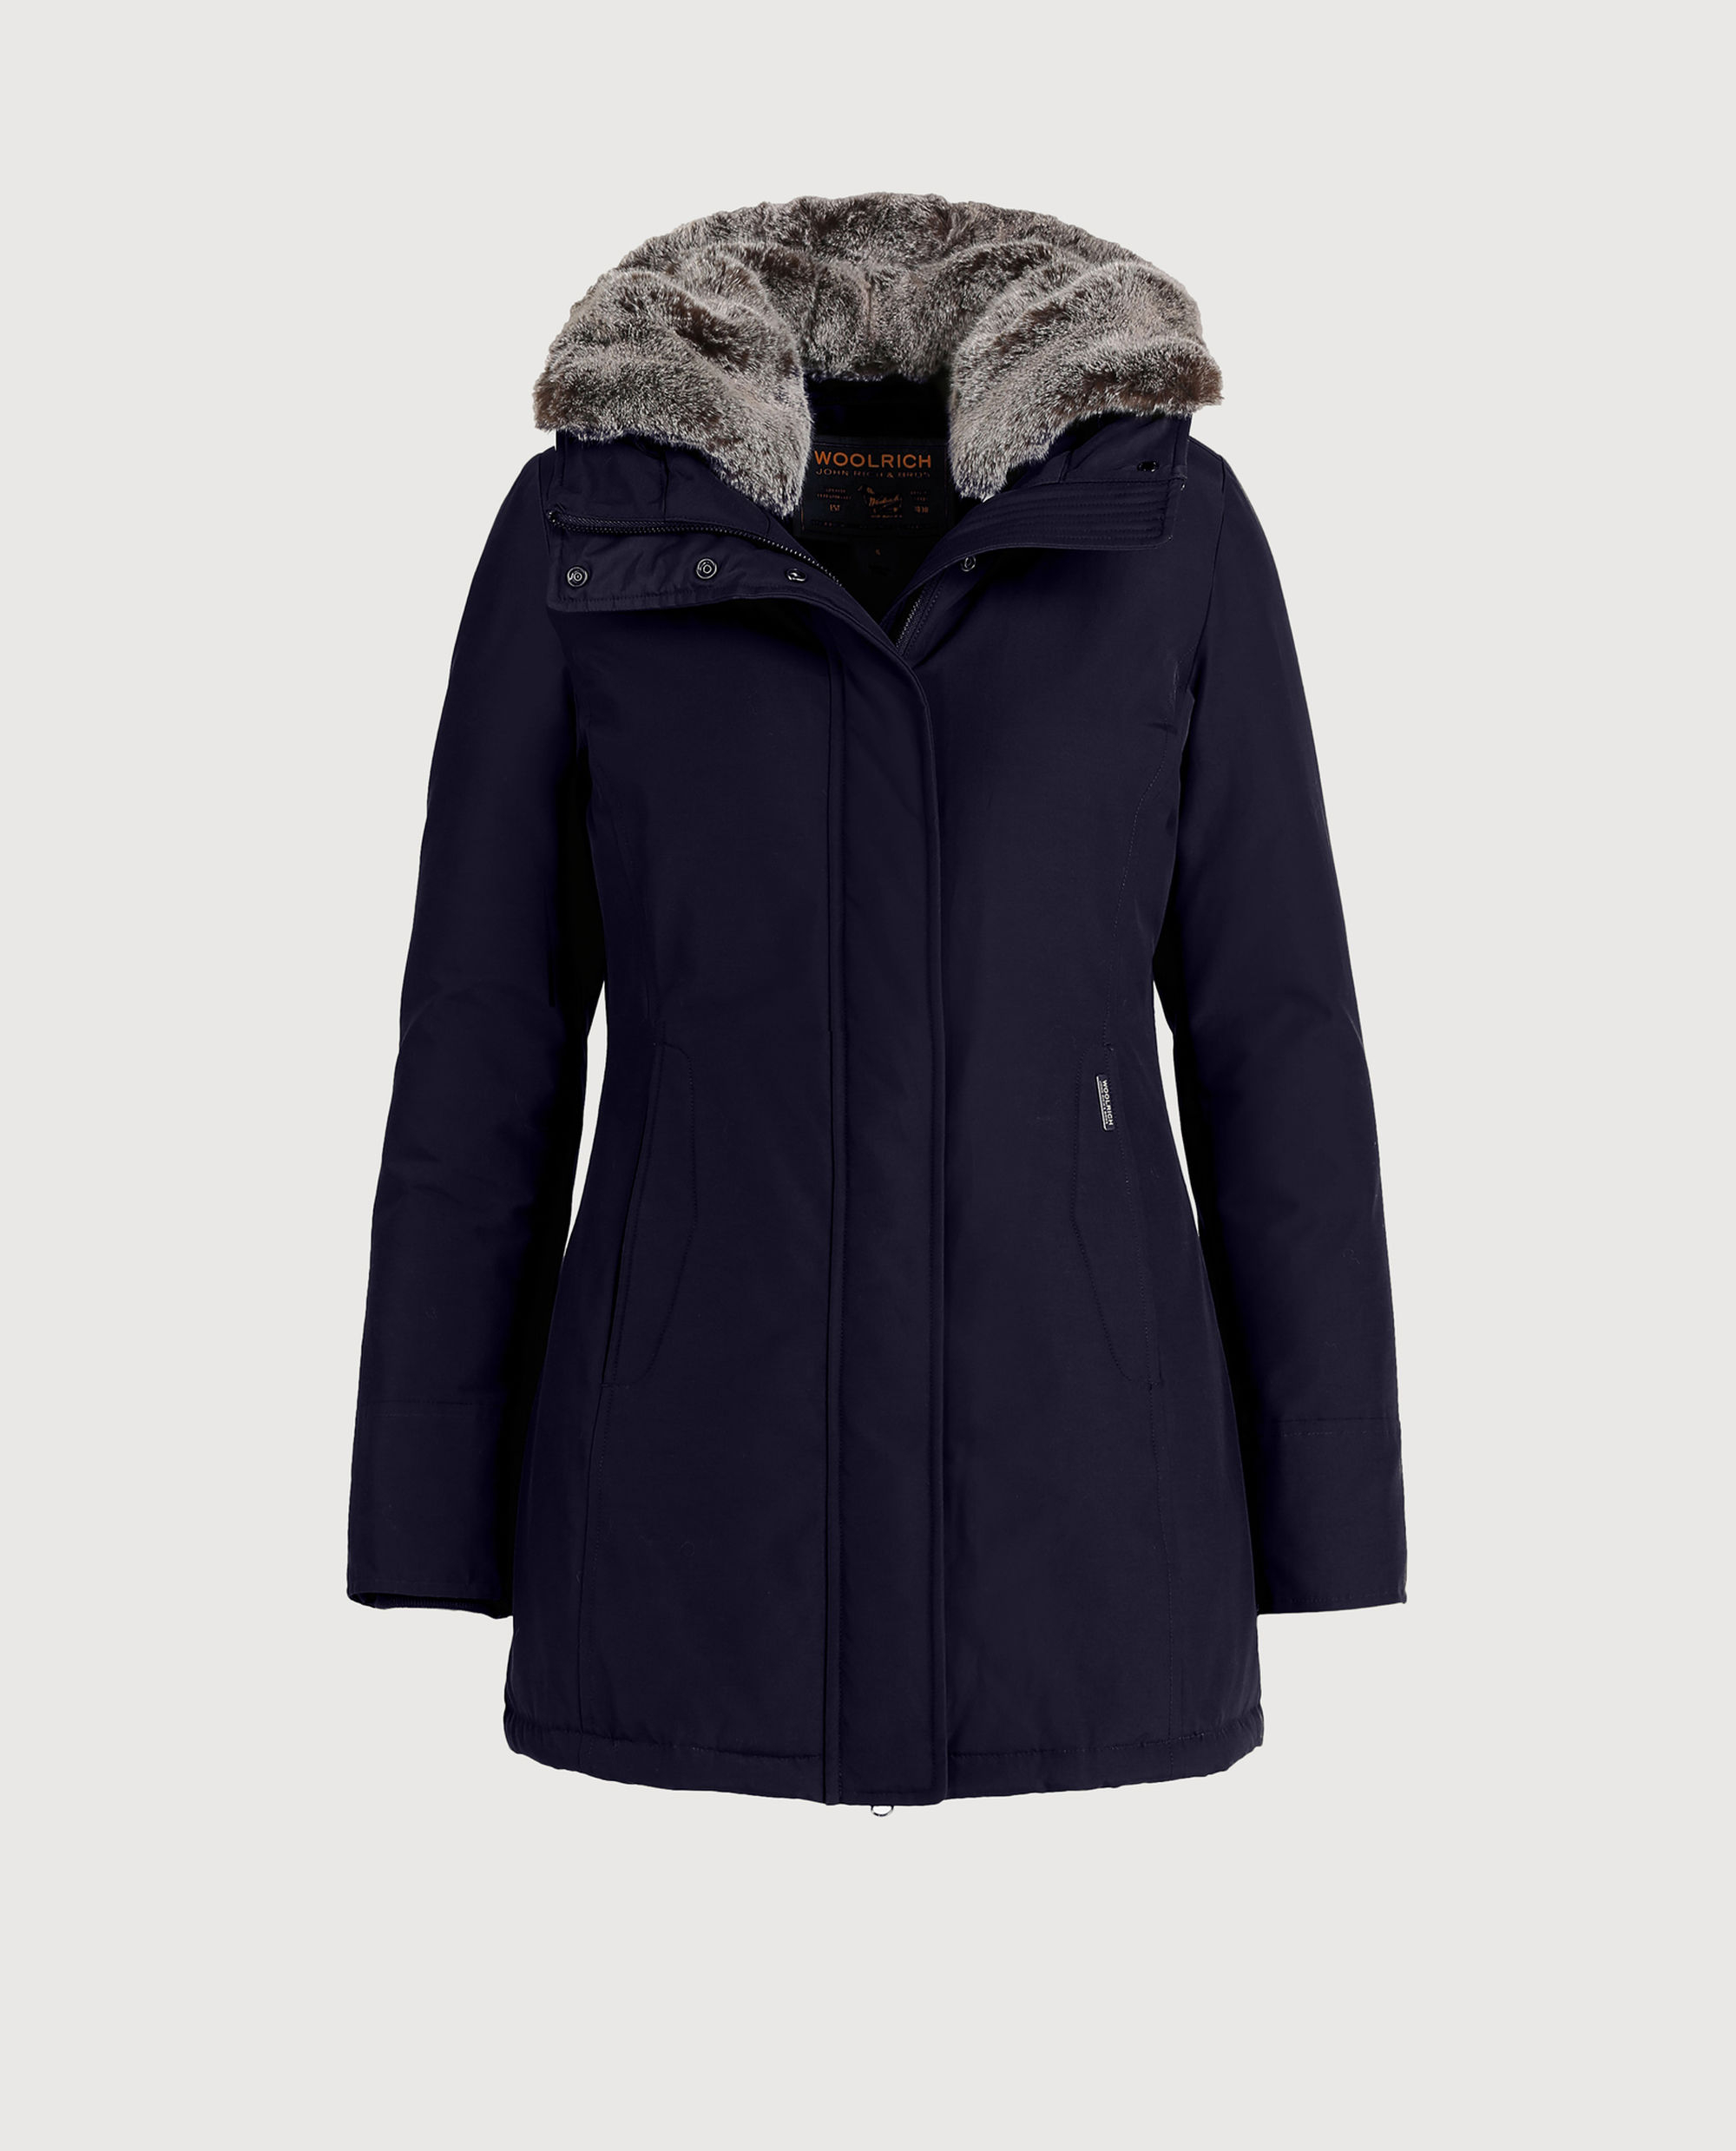 Giacca donna WOOLRICH W'S ARCTIC PARKA FR